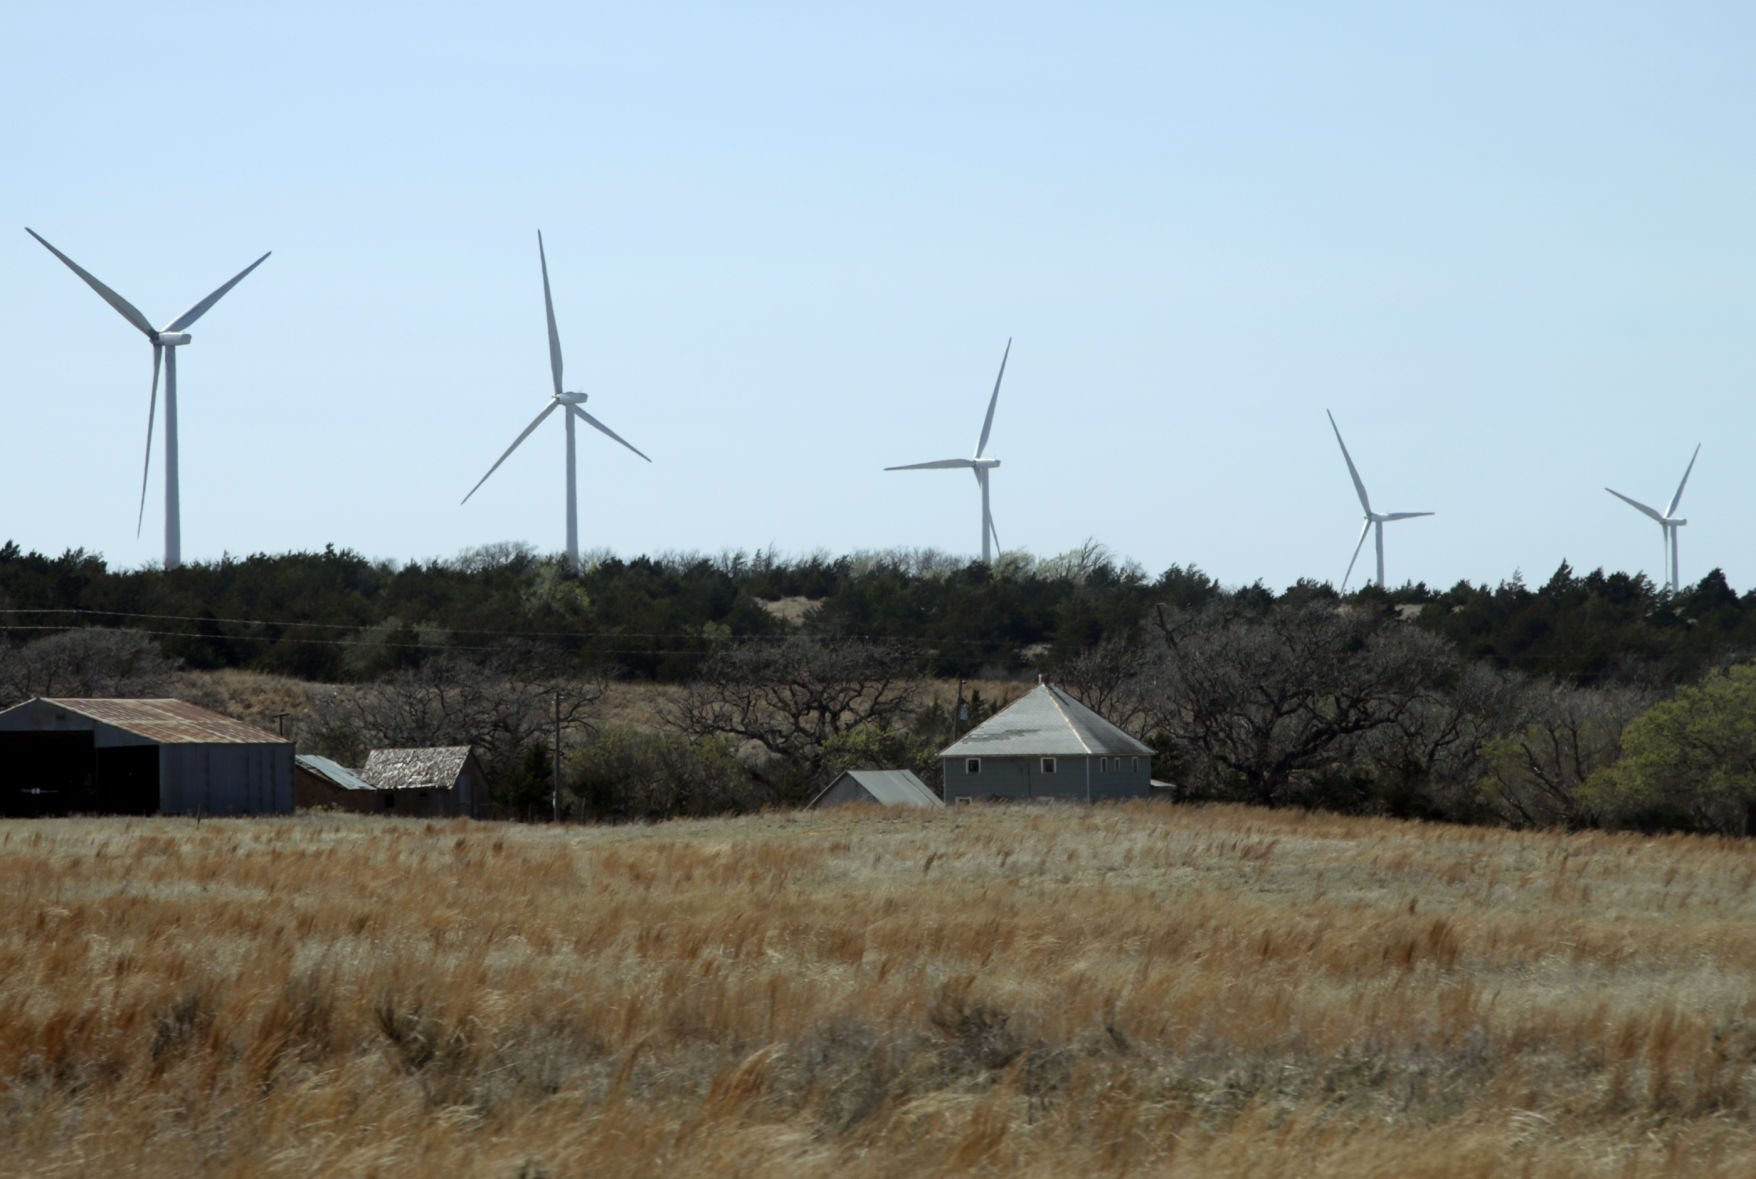 GE And Invenergy Working On 2 GW Wind Farm In Oklahoma Panhandle